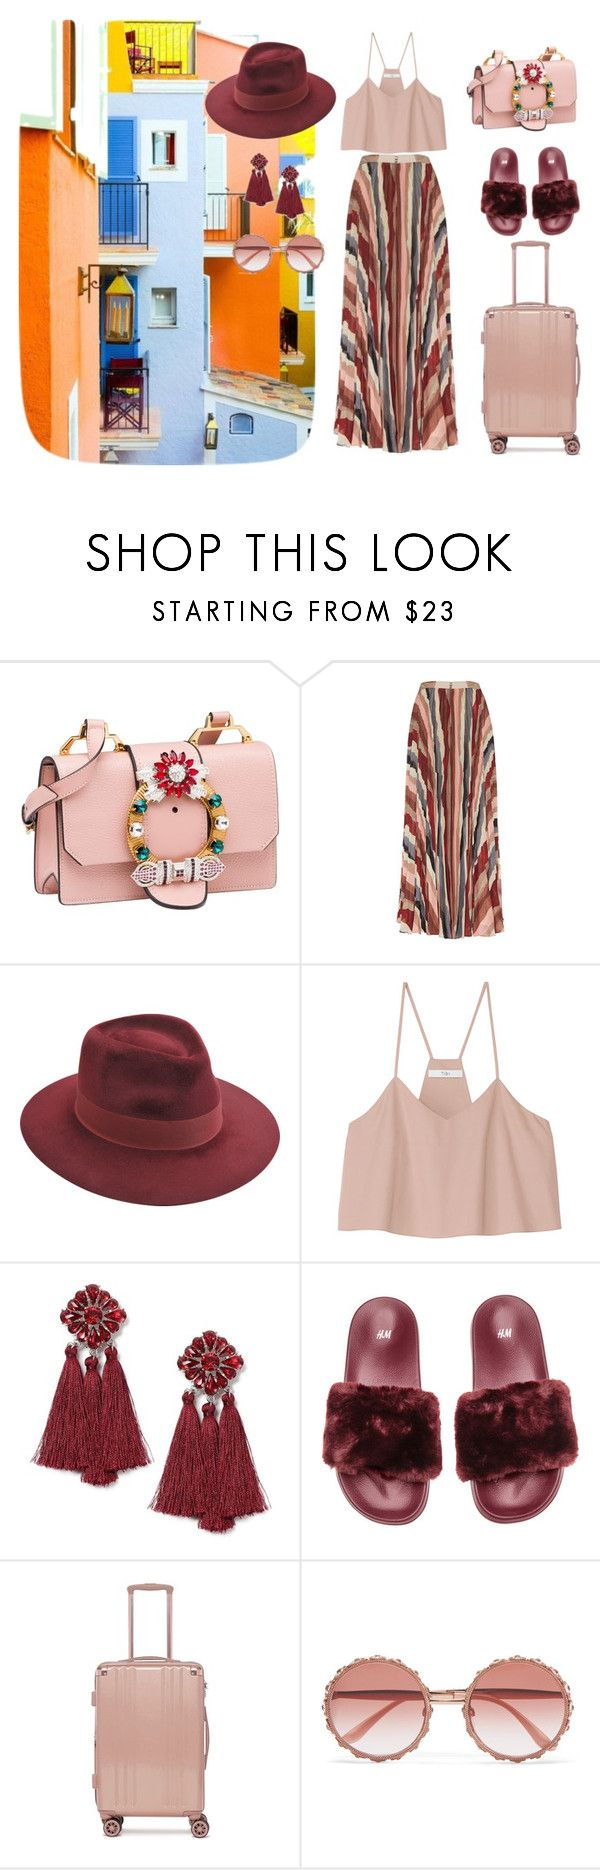 """Saint Tropez Travel Outfit"" by salbiylaazzara-fashion on Polyvore featuring Saint Tropez, Miu Miu, Alice + Olivia, Larose, TIBI, Miss Selfridge, CalPak, Dolce&Gabbana, sainttropez and outfitsfortravel"